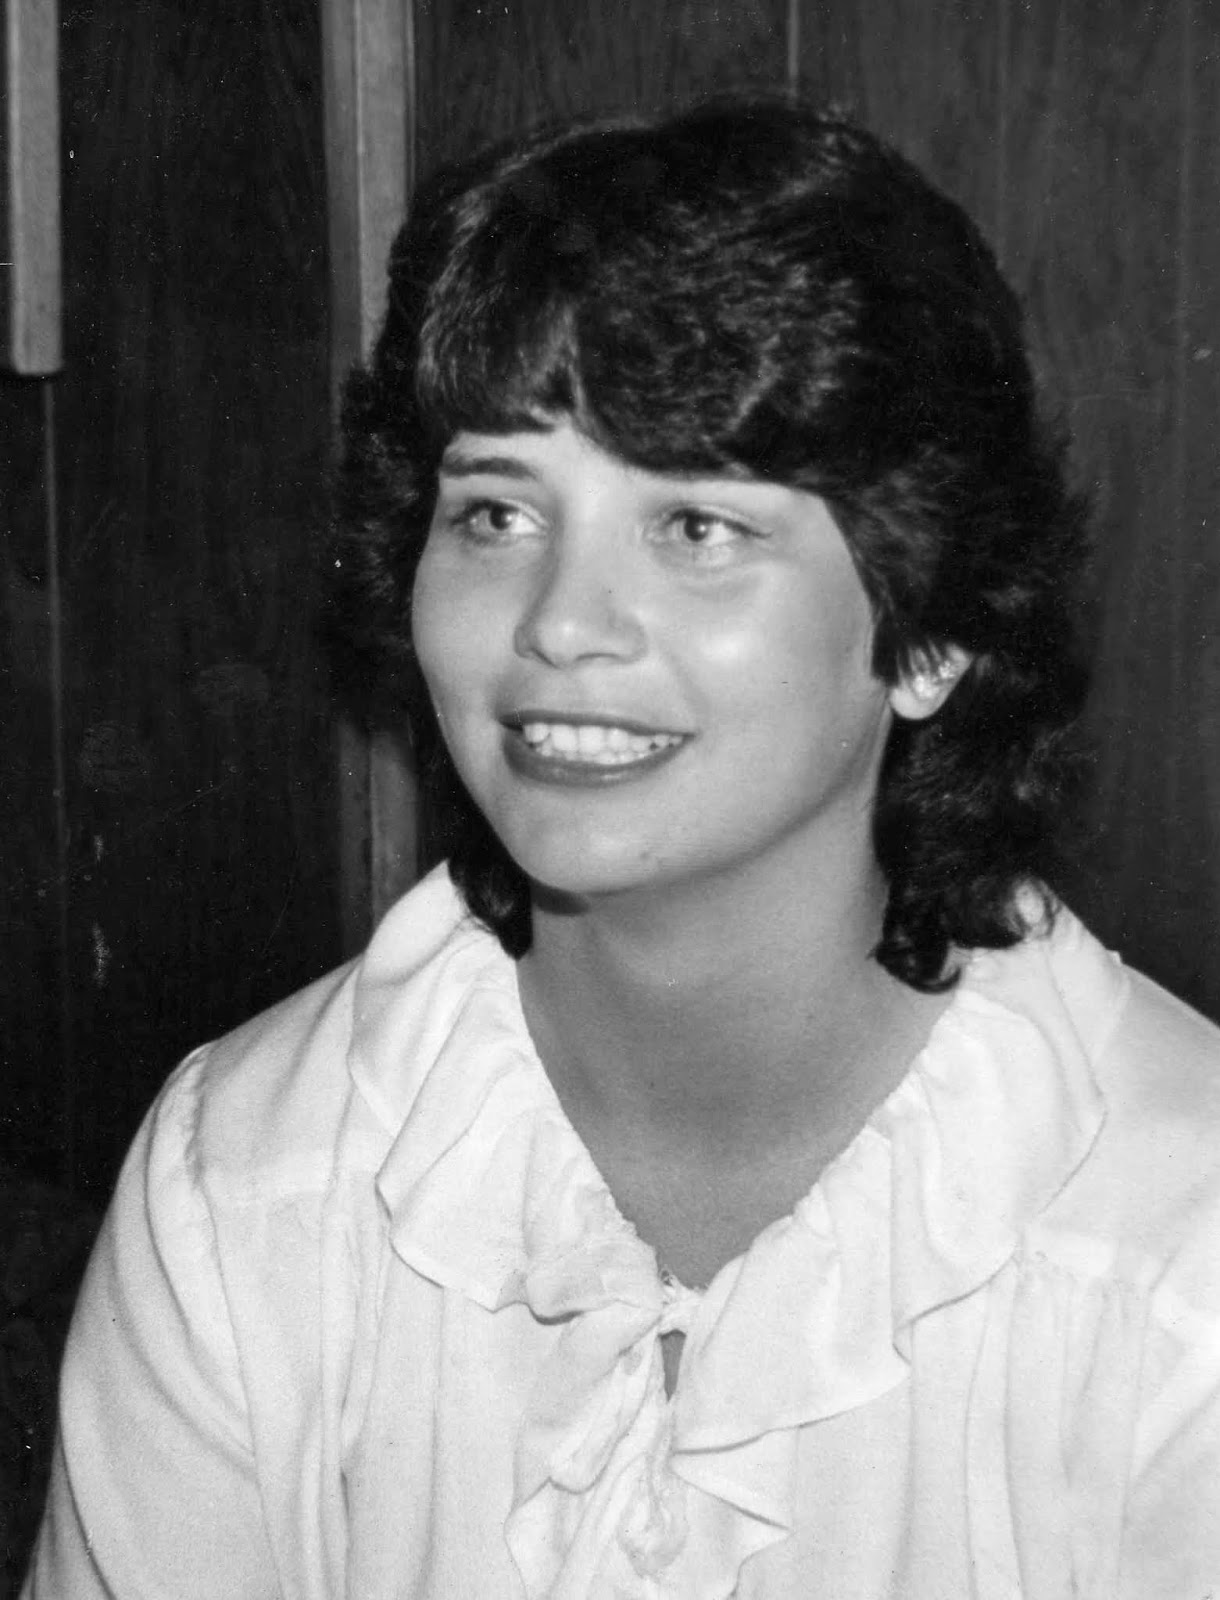 Teenage girl in the 1970s with medium length dark wavy hair